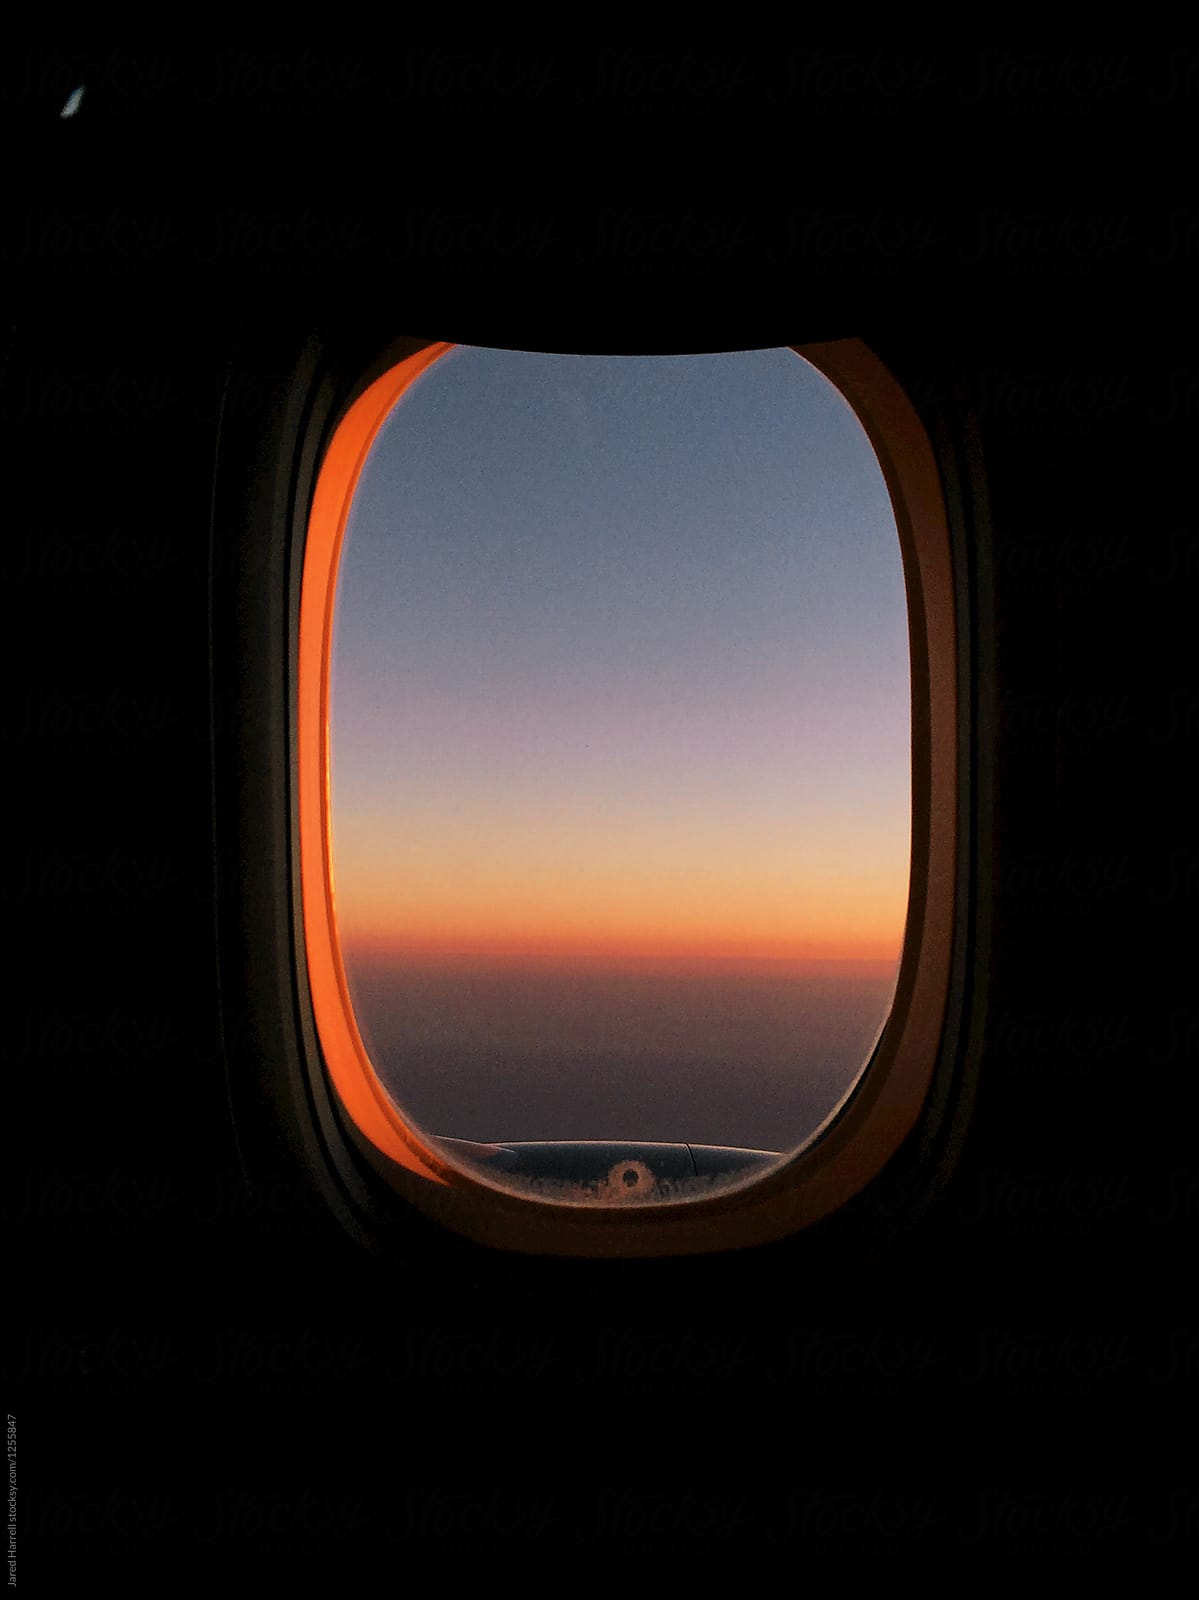 Astonishing Airplane Window Seat View Of Sunset Overlooking Doha Qatar Cjindustries Chair Design For Home Cjindustriesco